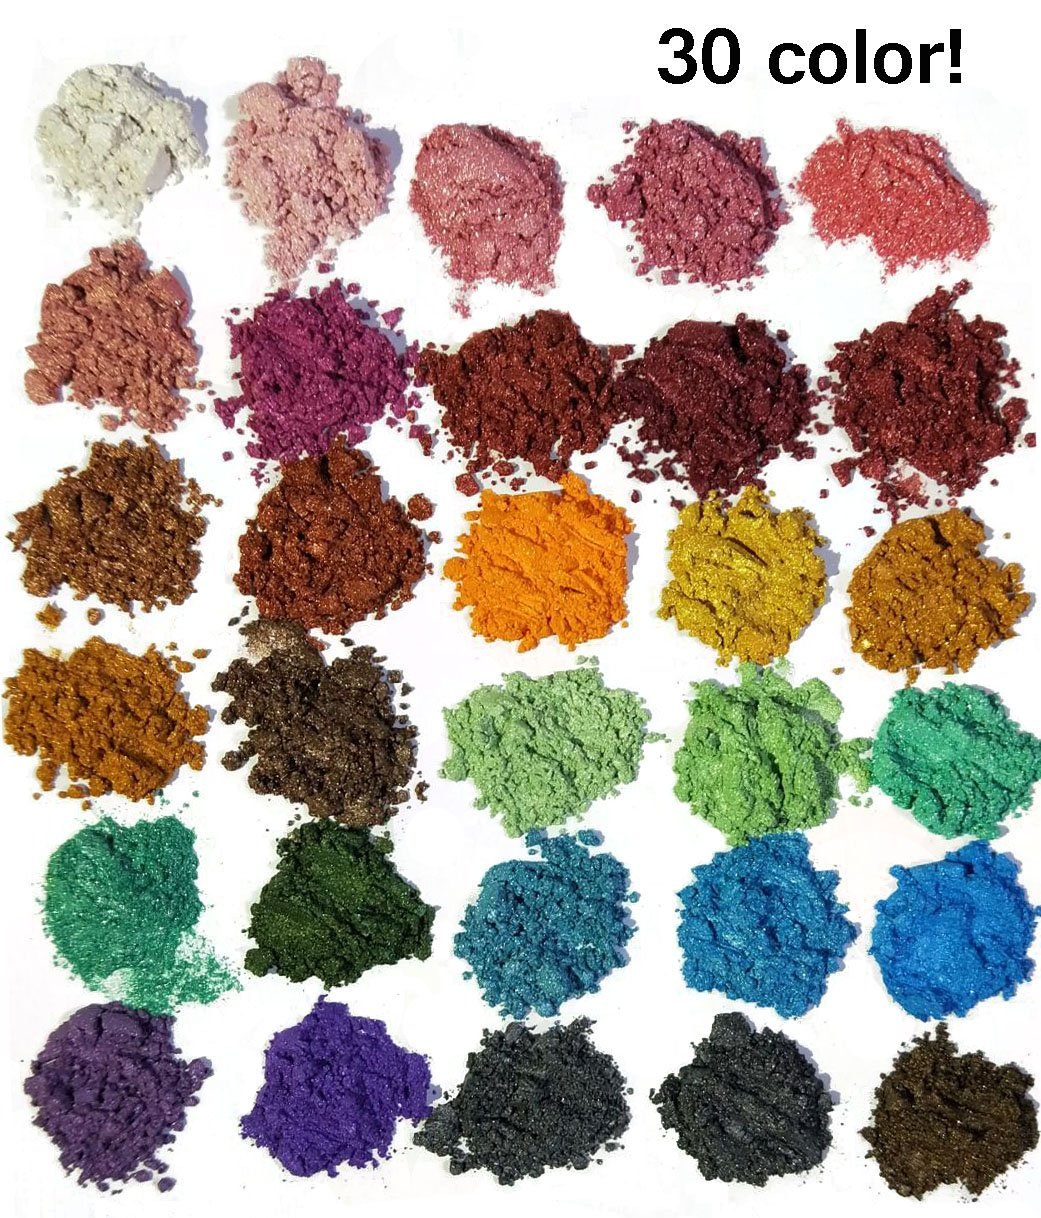 30 Color Pigments Shimmer Mica Powder - DIY Soap Making, Candle Making,Resin Dye, Mica Powder Organic for Soap Molds (5 grams Each, 150 Grams Total) NIGHT-GRING